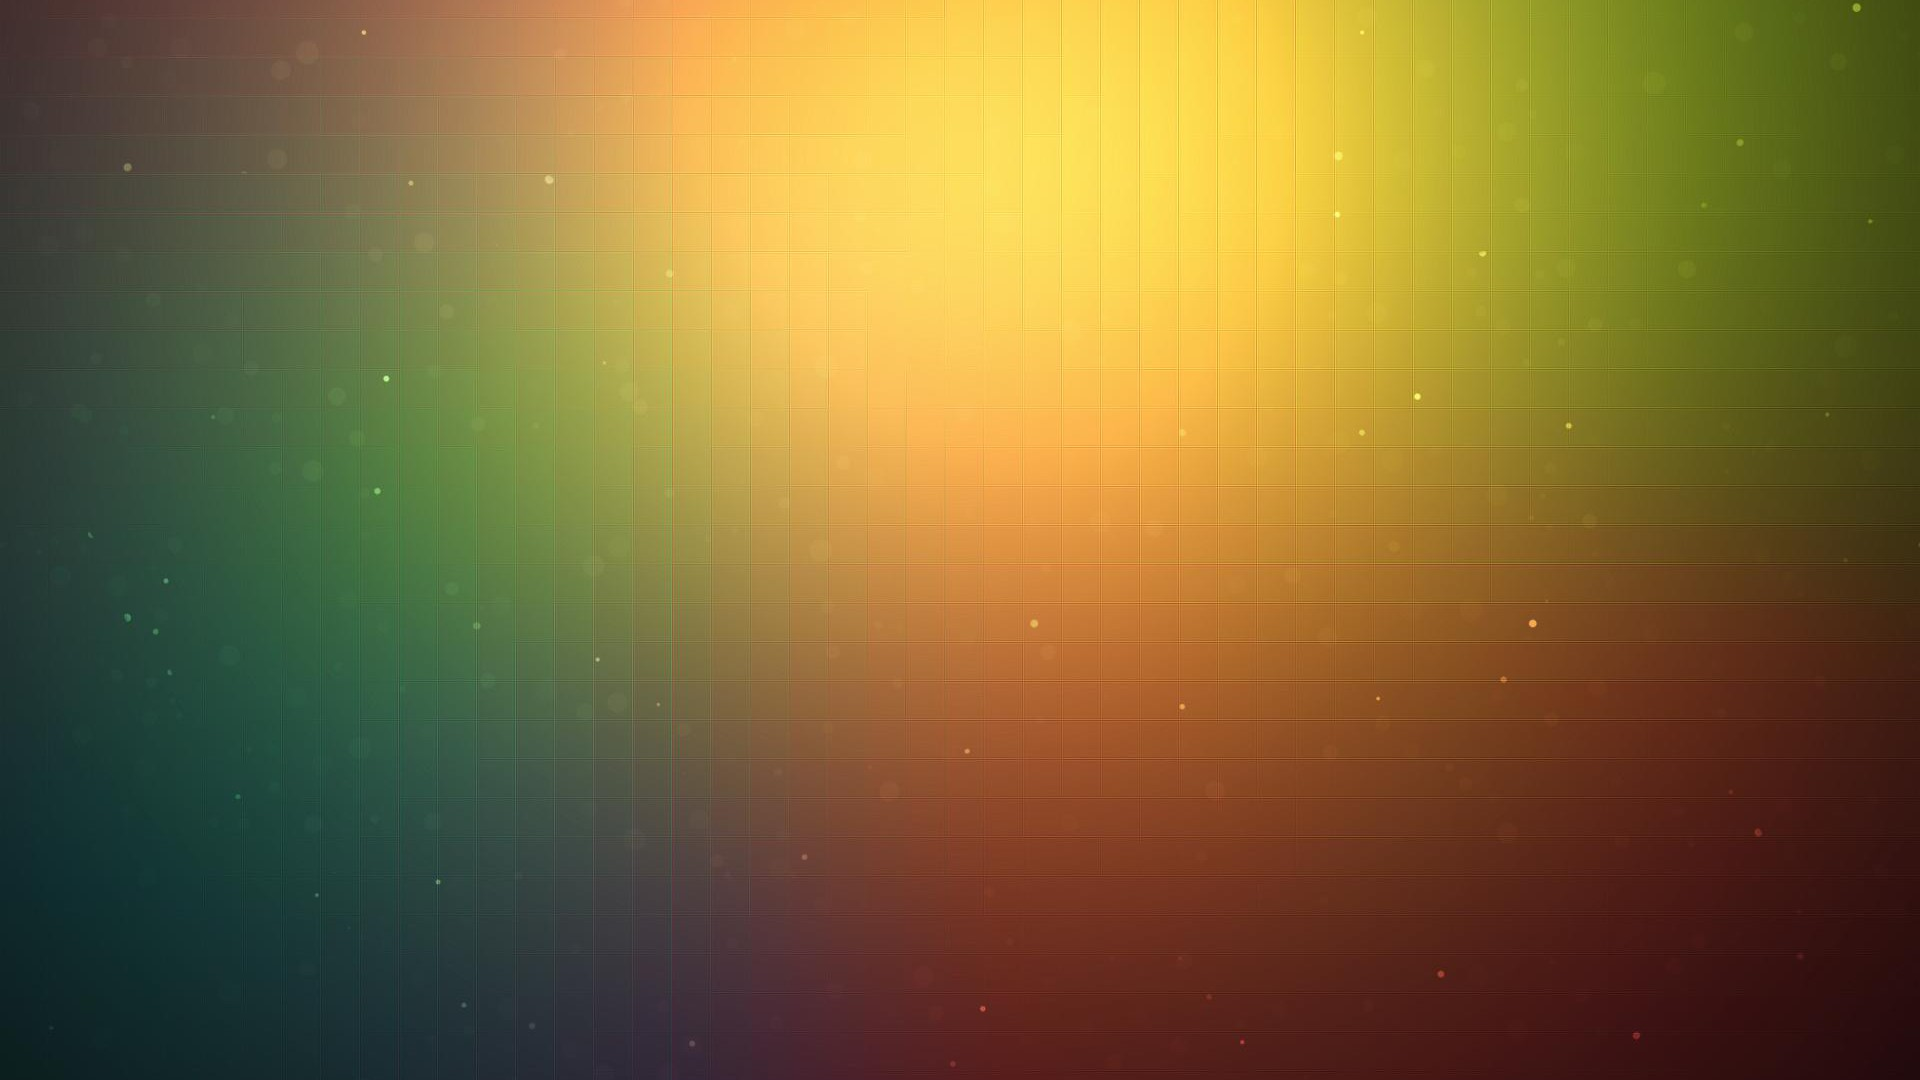 ... Simple Wallpaper; Simple Wallpapers